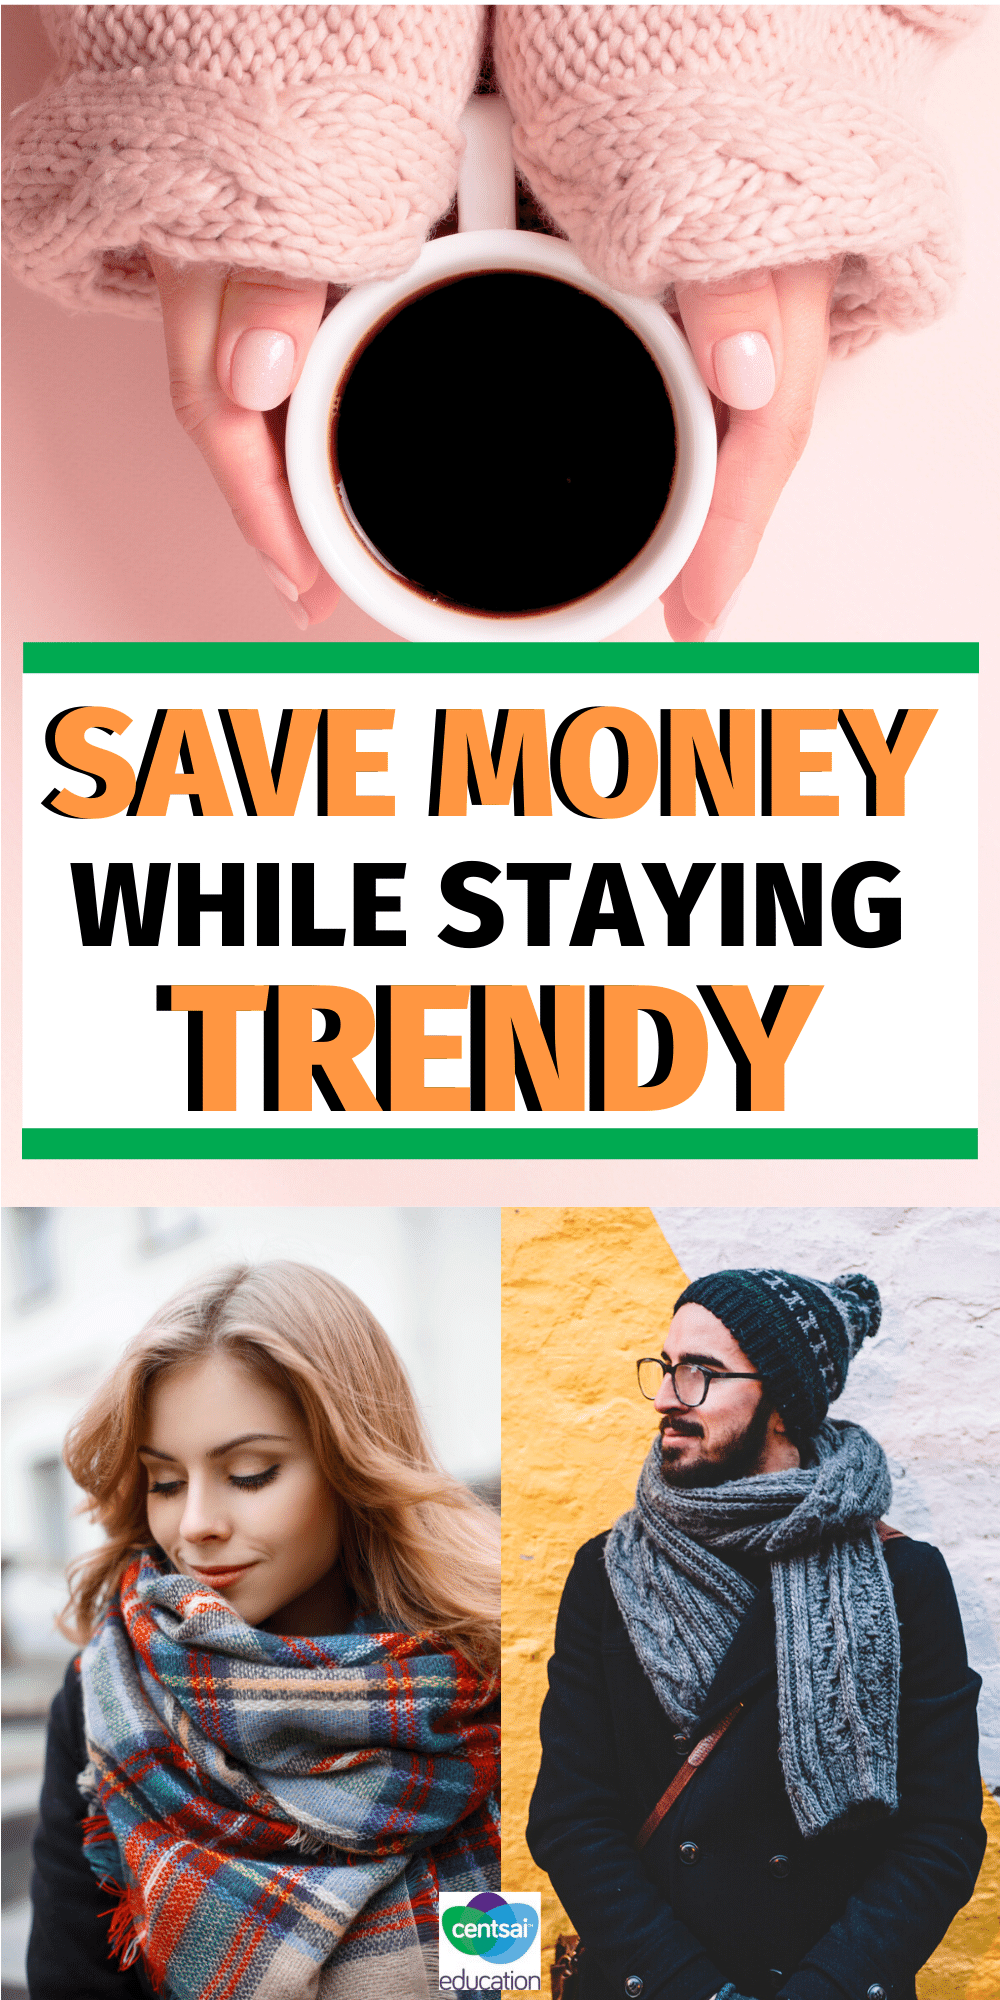 Do your students want the latest trendy scarves and fancy bath bombs? Of course they do! Here are some practical ideas for them to have what they want at a super low price. #studentlife #frugaltips #tips #Personalfinancetips